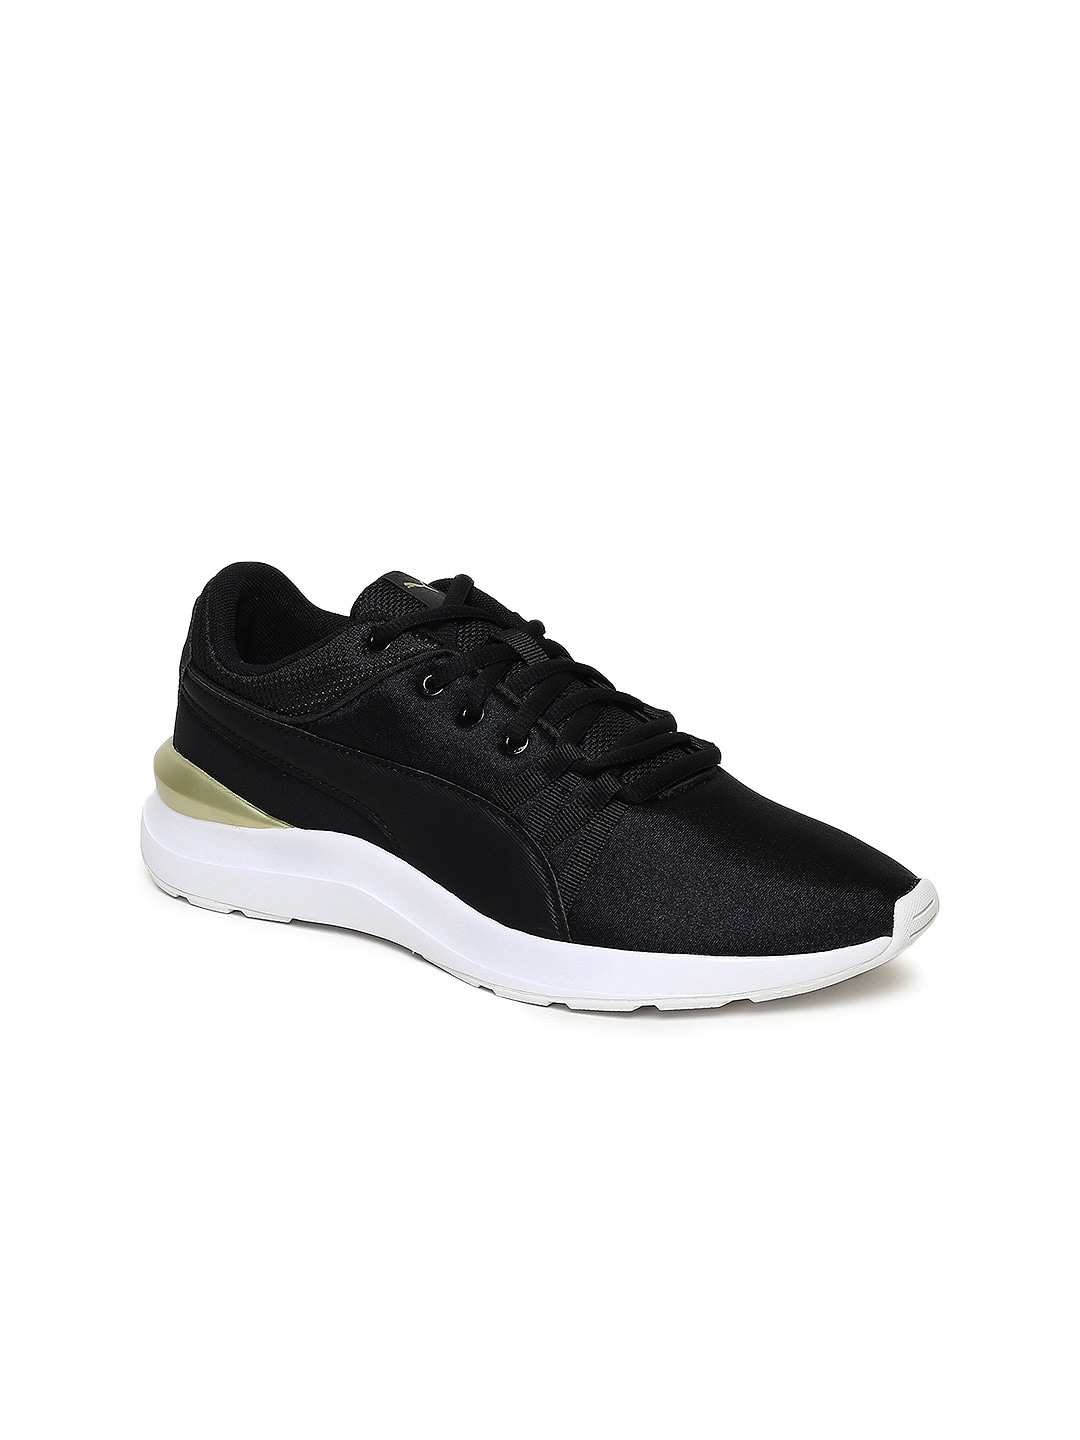 Puma Casual Shoes - Casual Puma Shoes Online for Men Women  837520664